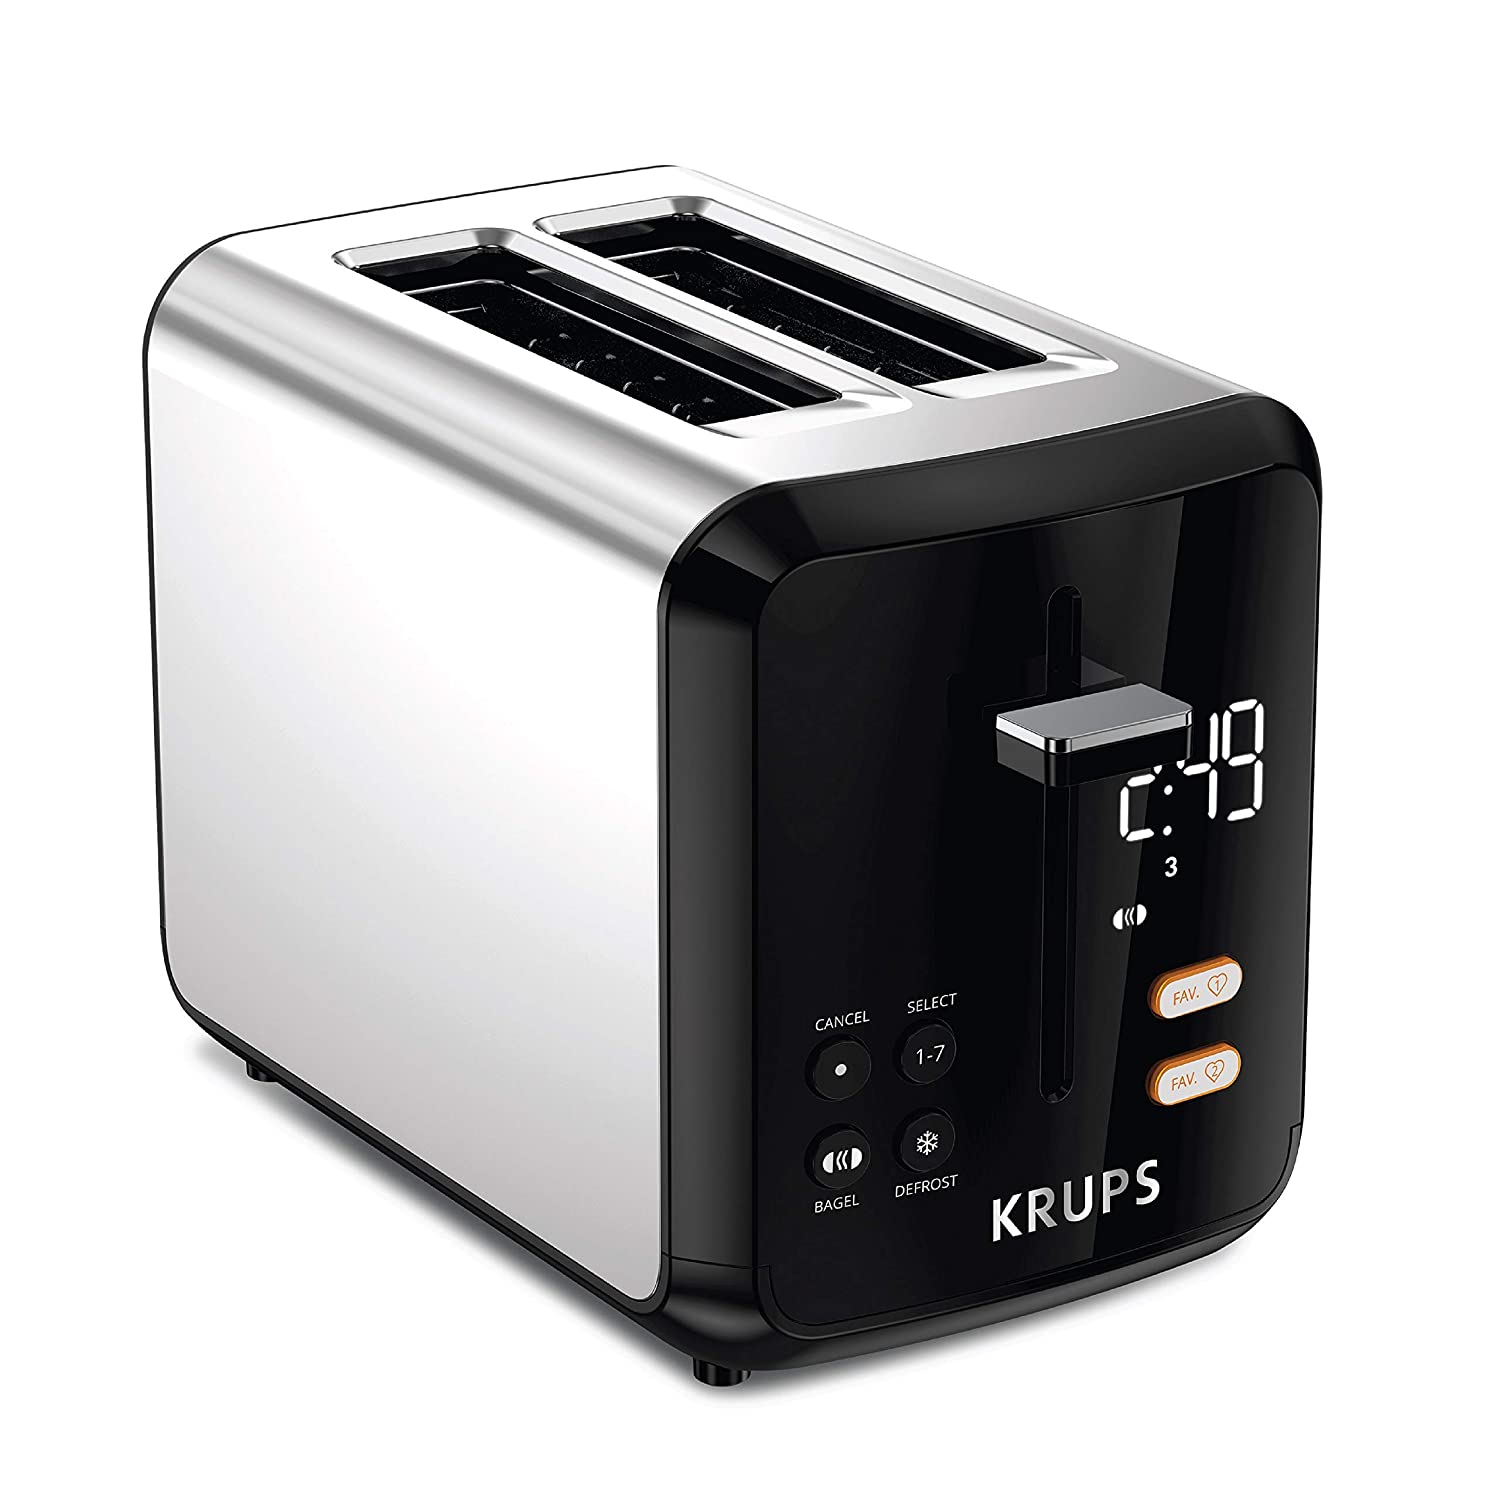 KRUPS KH320D50 My Memory Digital Stainless Steel Toaster, 7 Browning Level with personalized setting, Black (Renewed)